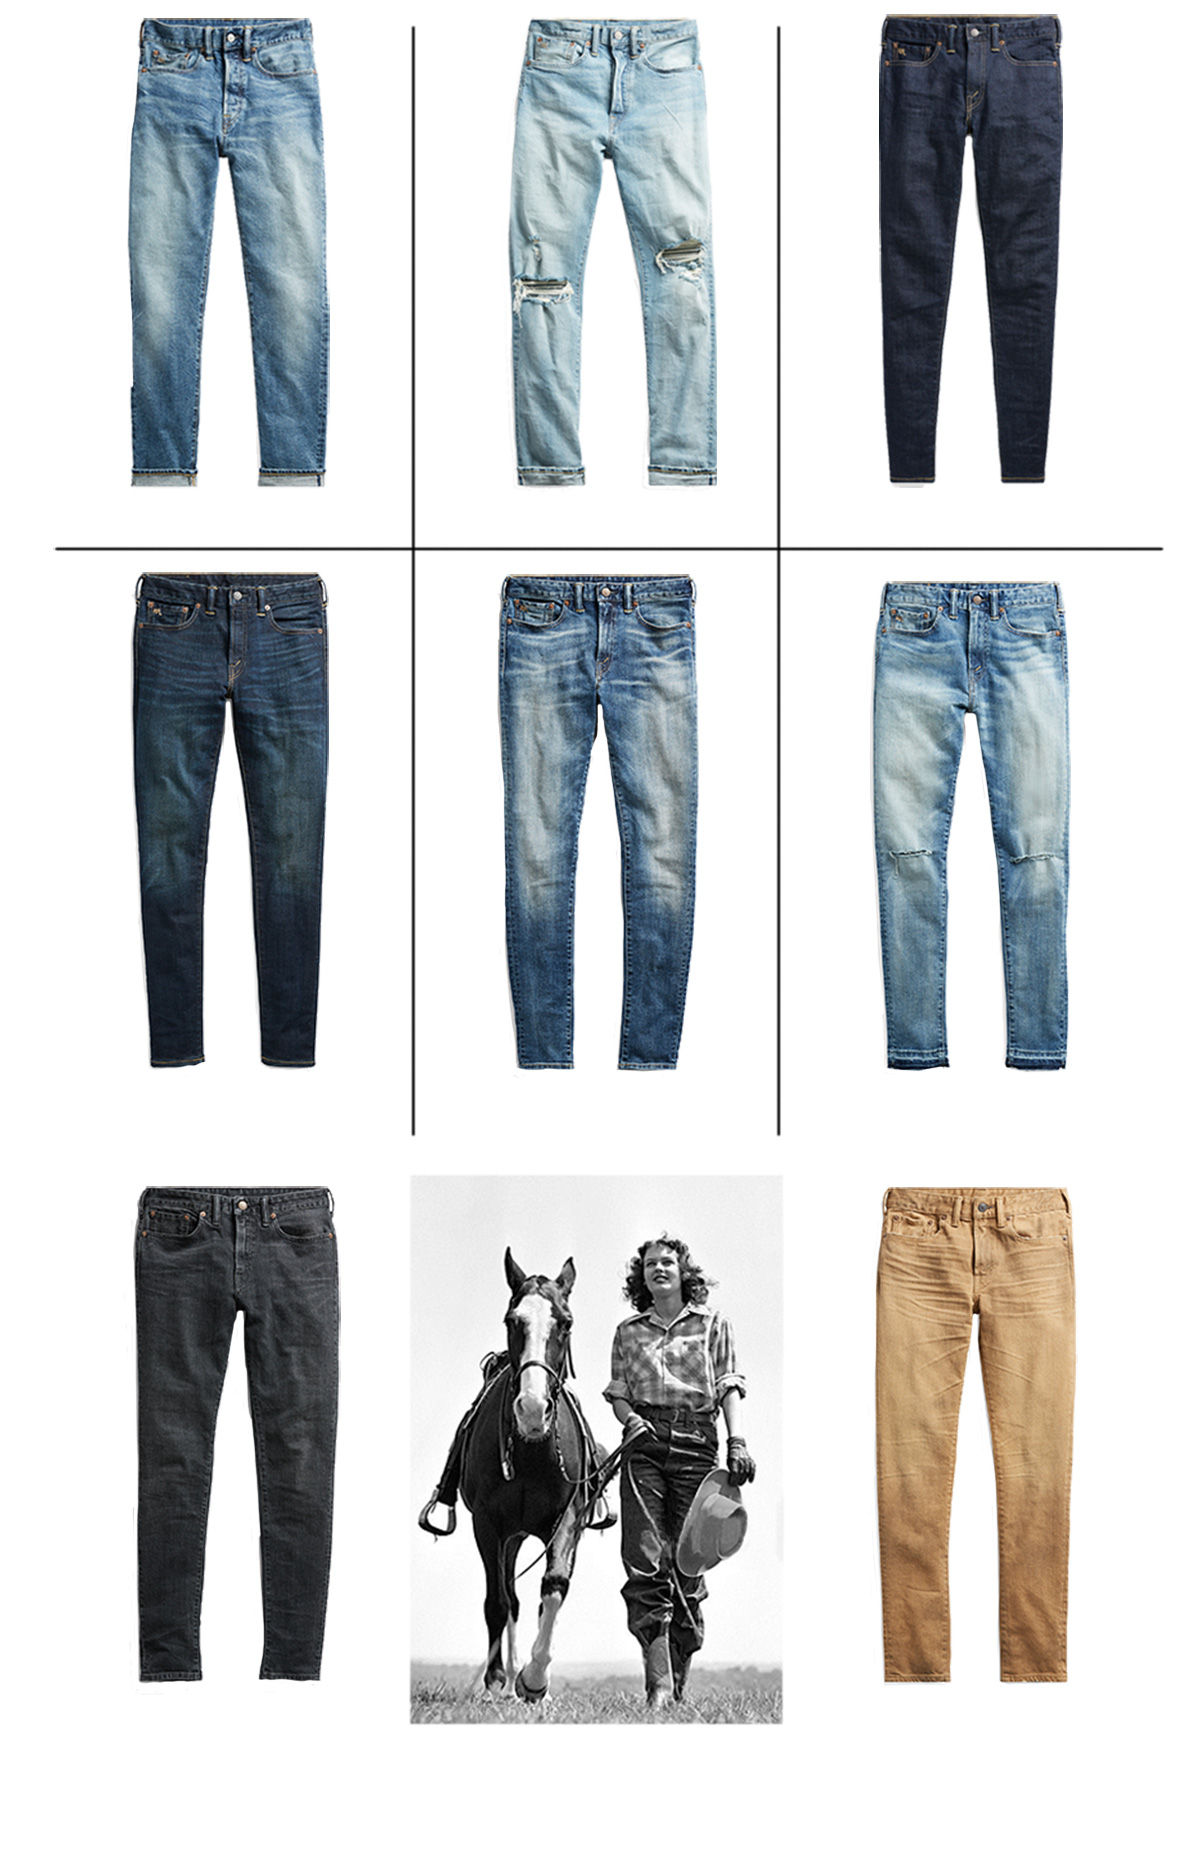 Grid of denim in various fits and treated with different washes